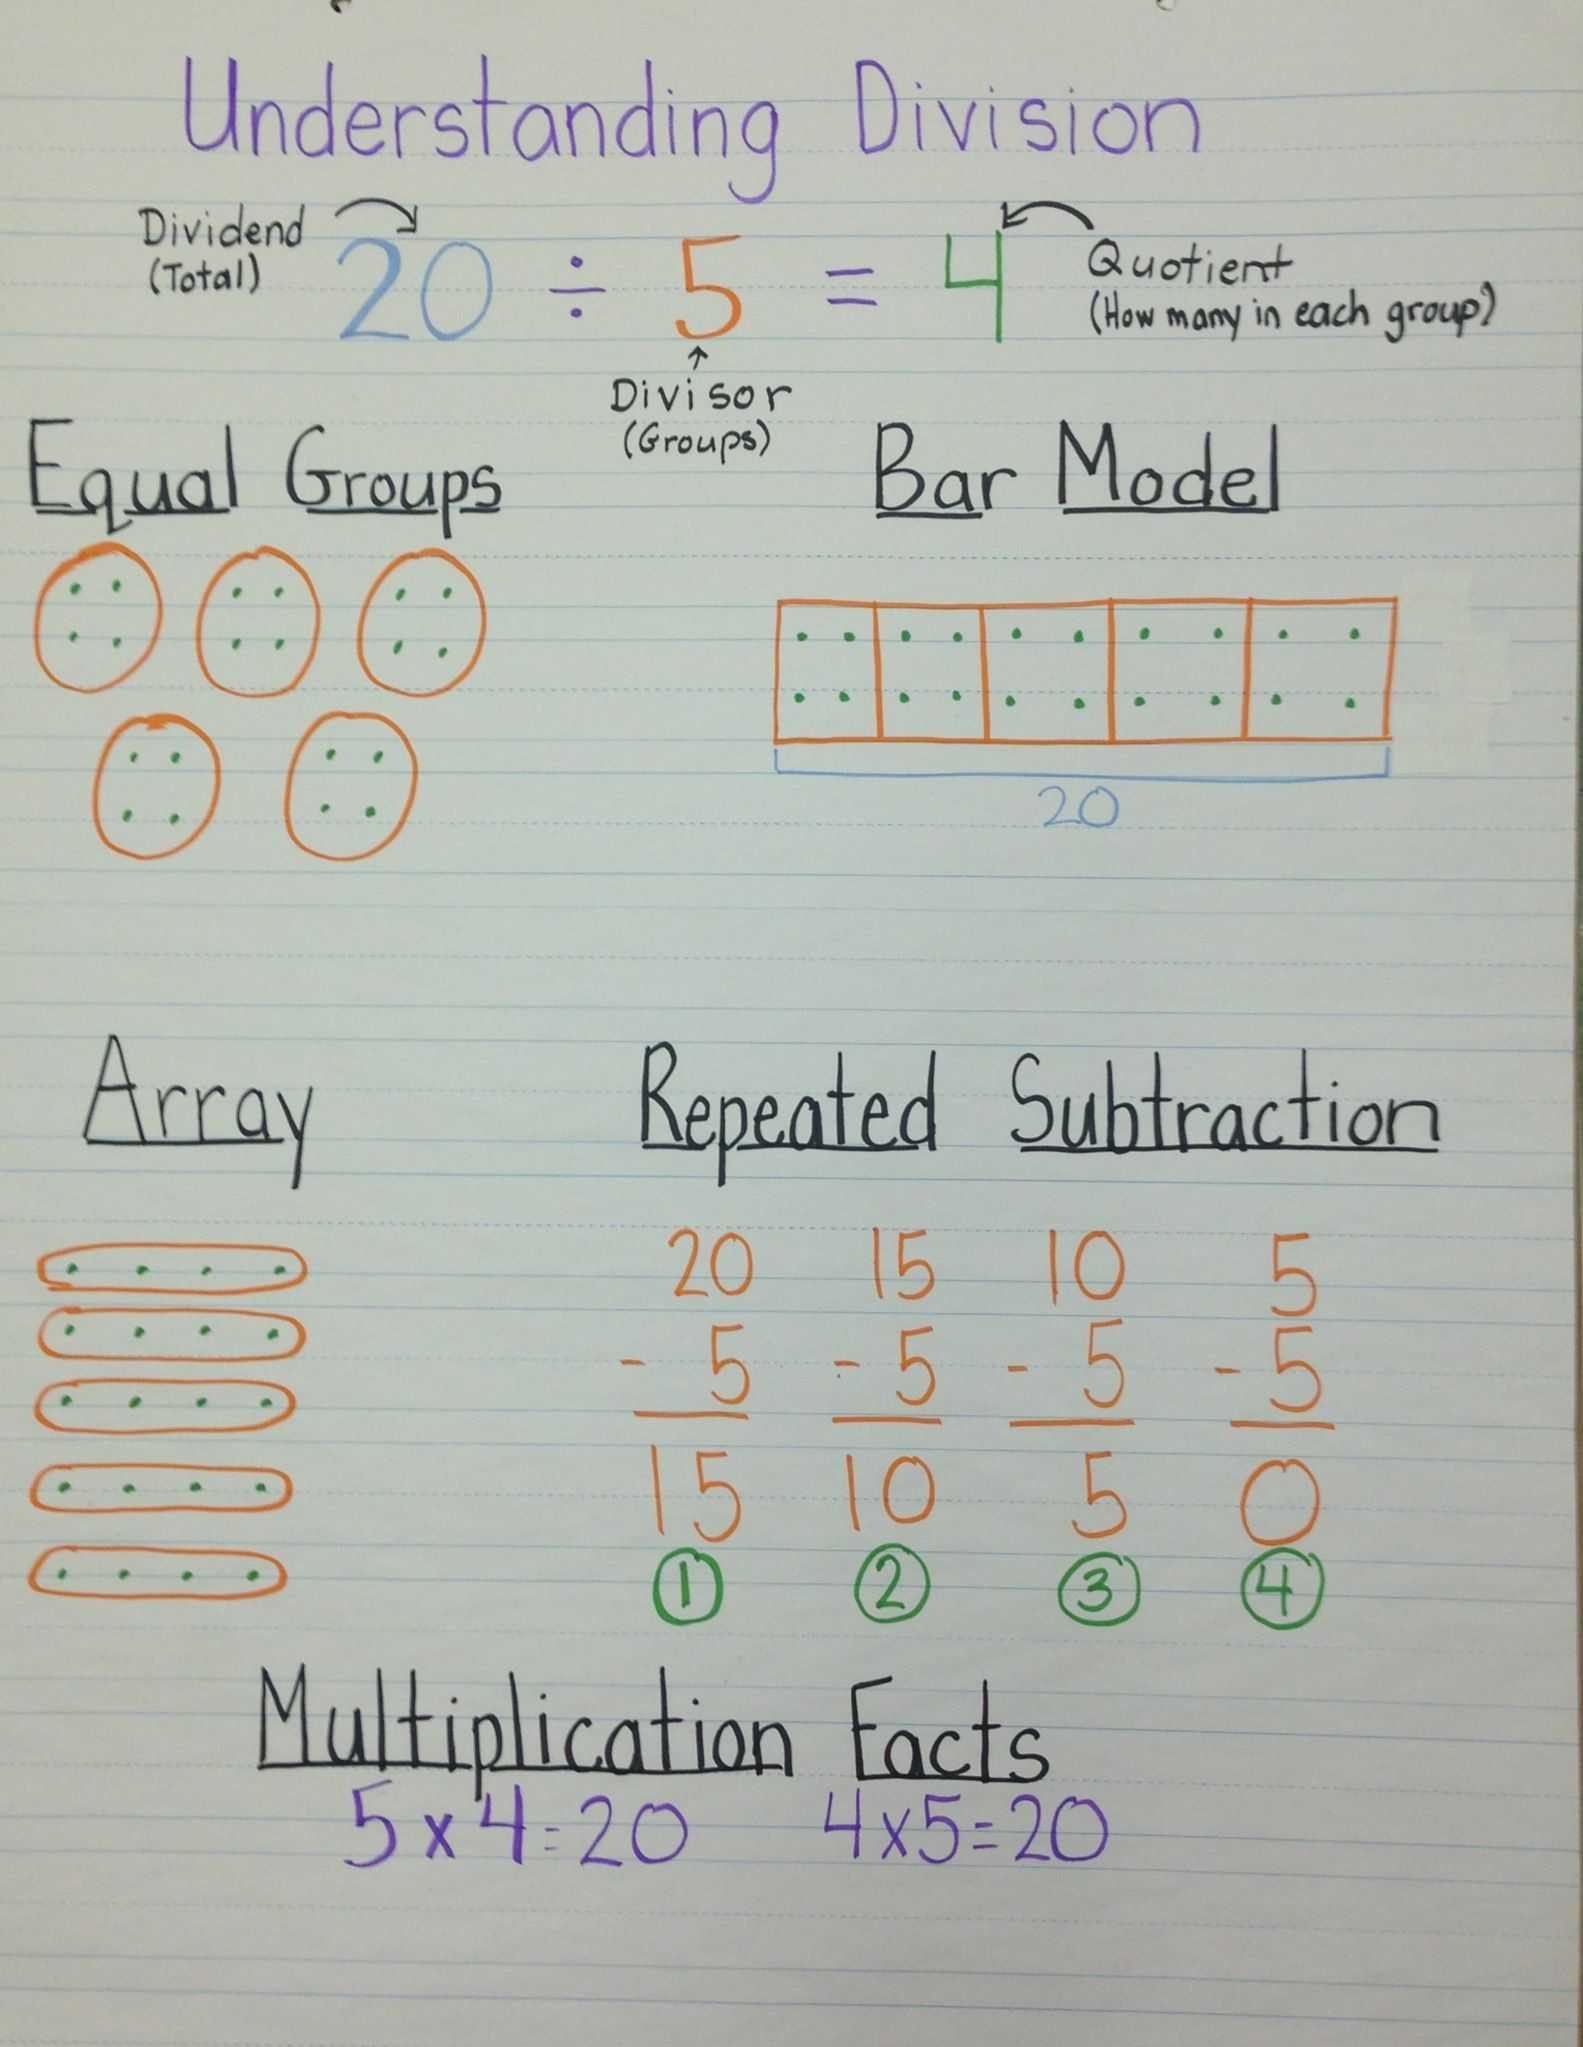 Multiplying Decimals Worksheets 6th Grade with Understanding Division Anchor Chart